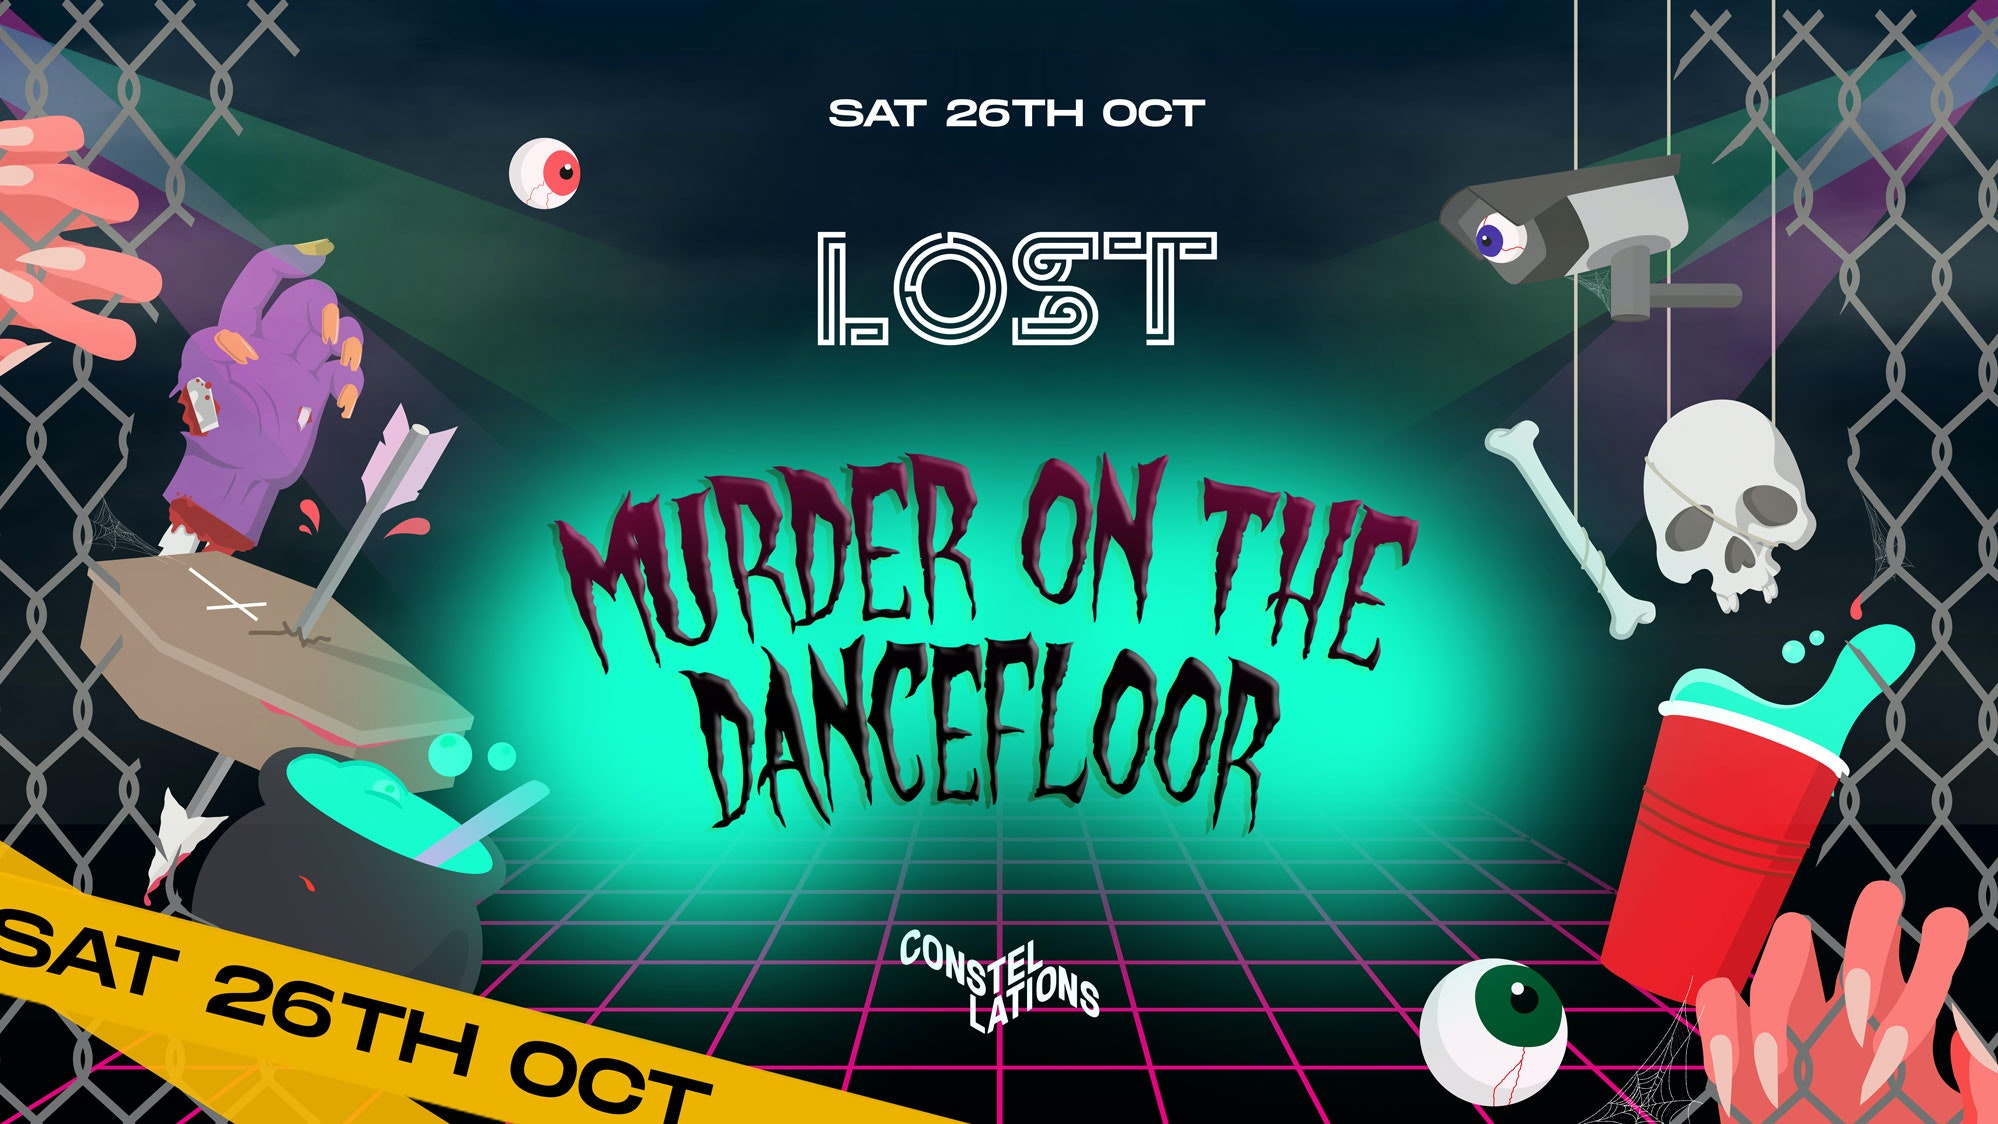 LOST : Murder On The Dancefloor : Constellations : Thurs 31st Oct